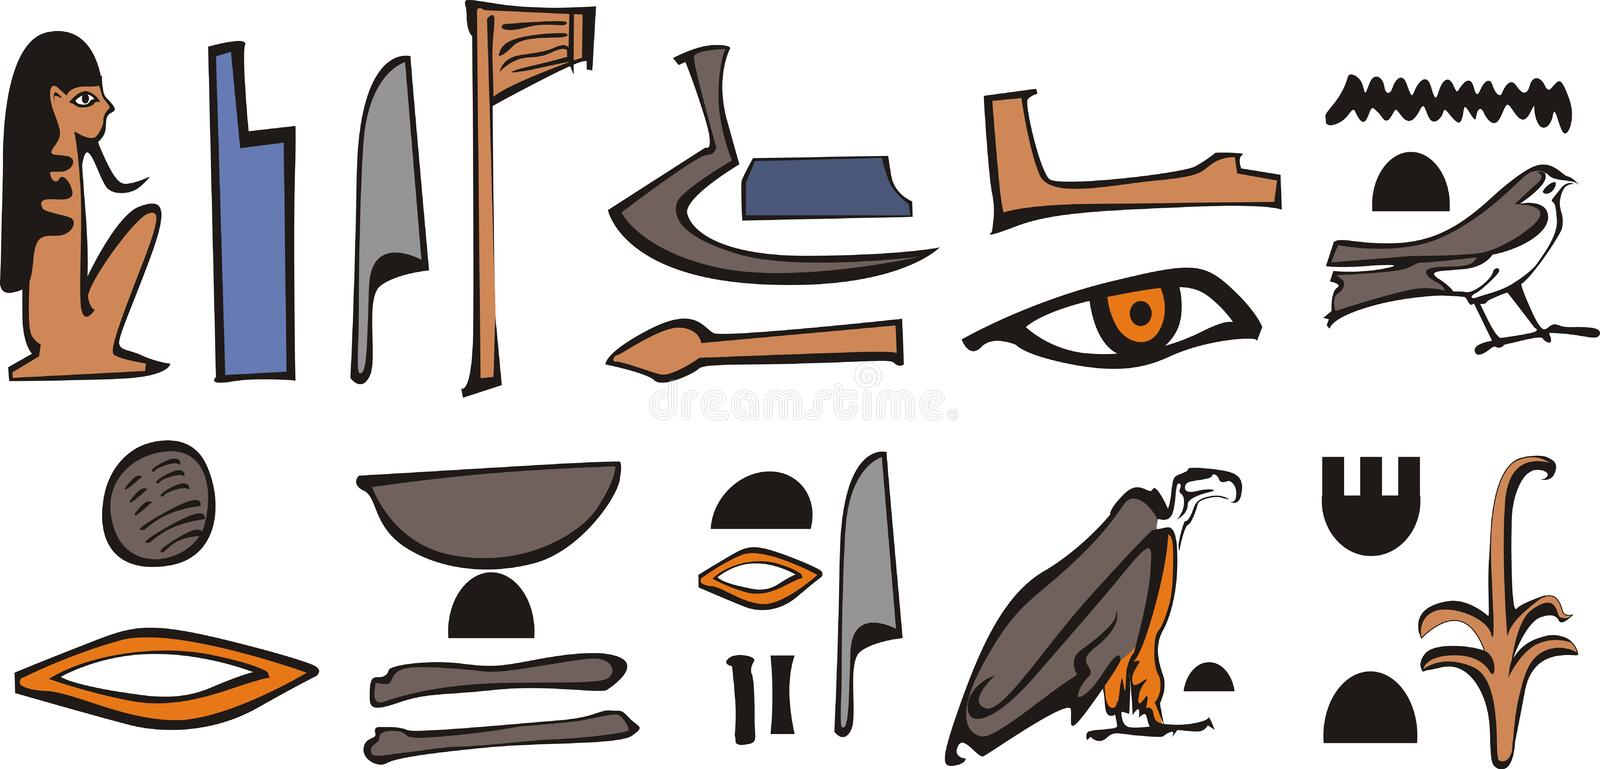 Download Egypt hieroglyph stock vector. Illustration of algiers - 15575338